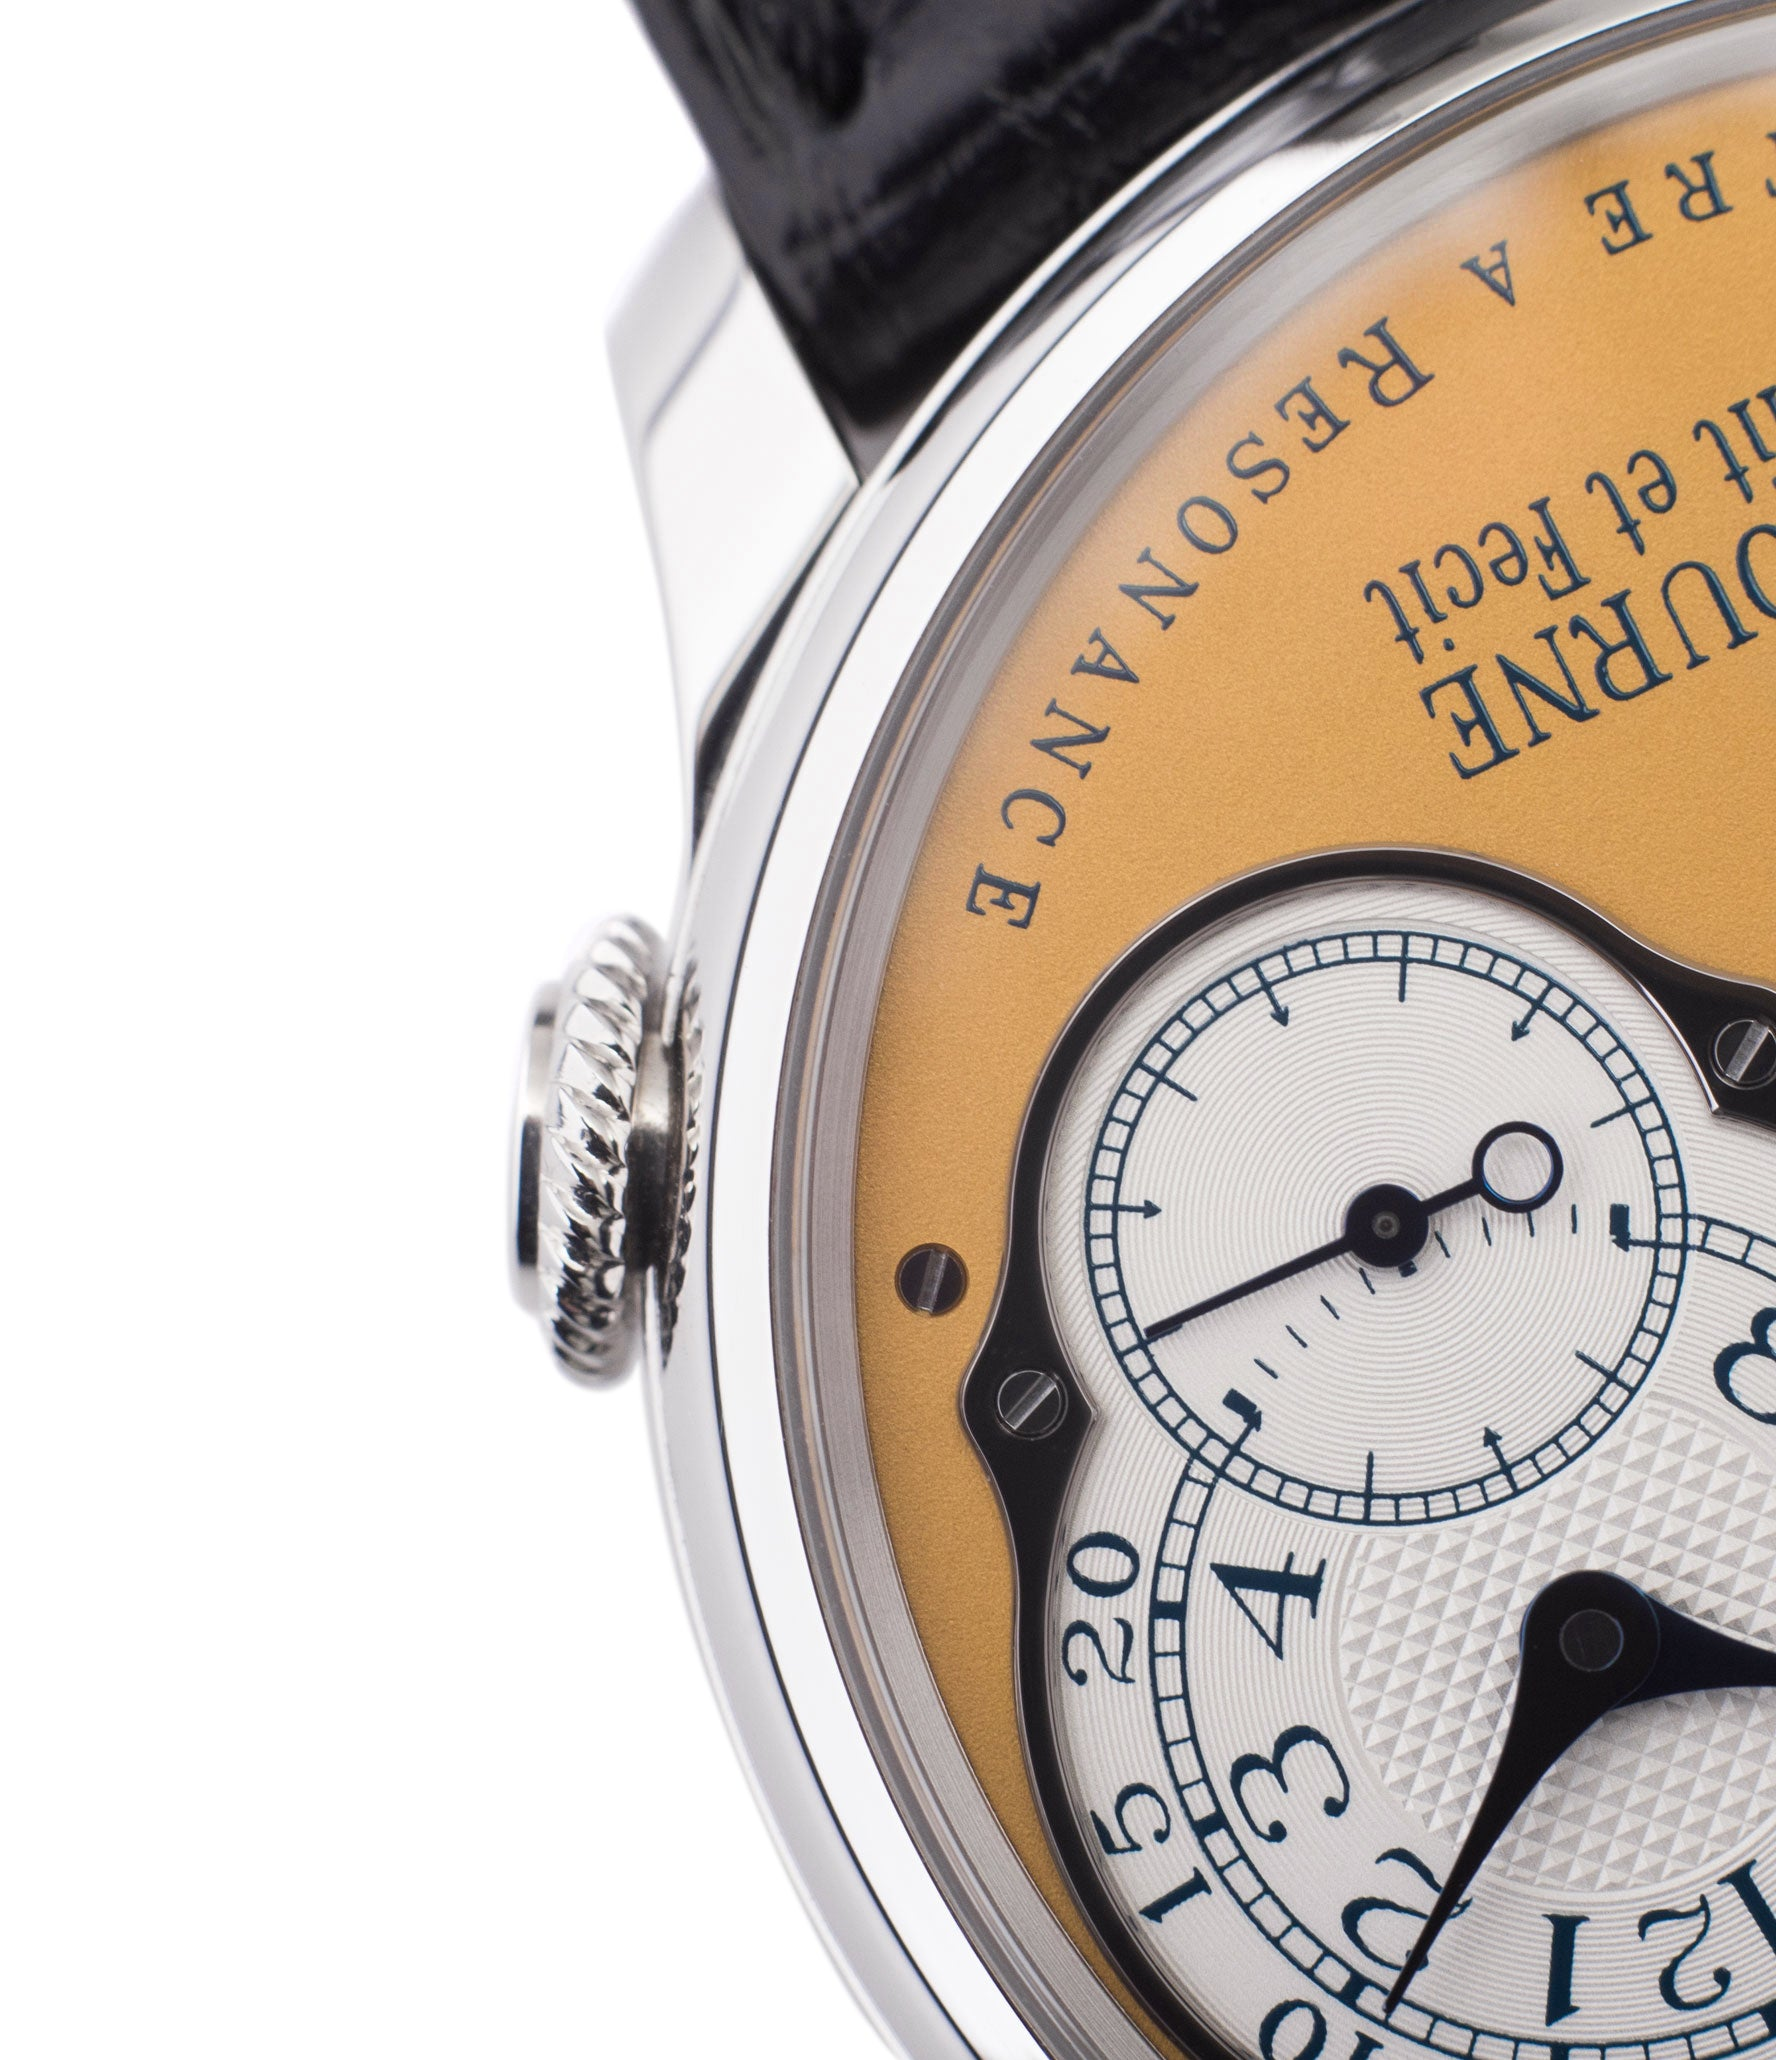 steel 38 mm F. P. Journe Chronomètre à Résonance Limited Edition Set of 5 watches for sale online at A Collected Man London approved UK retailer independent watchmakers